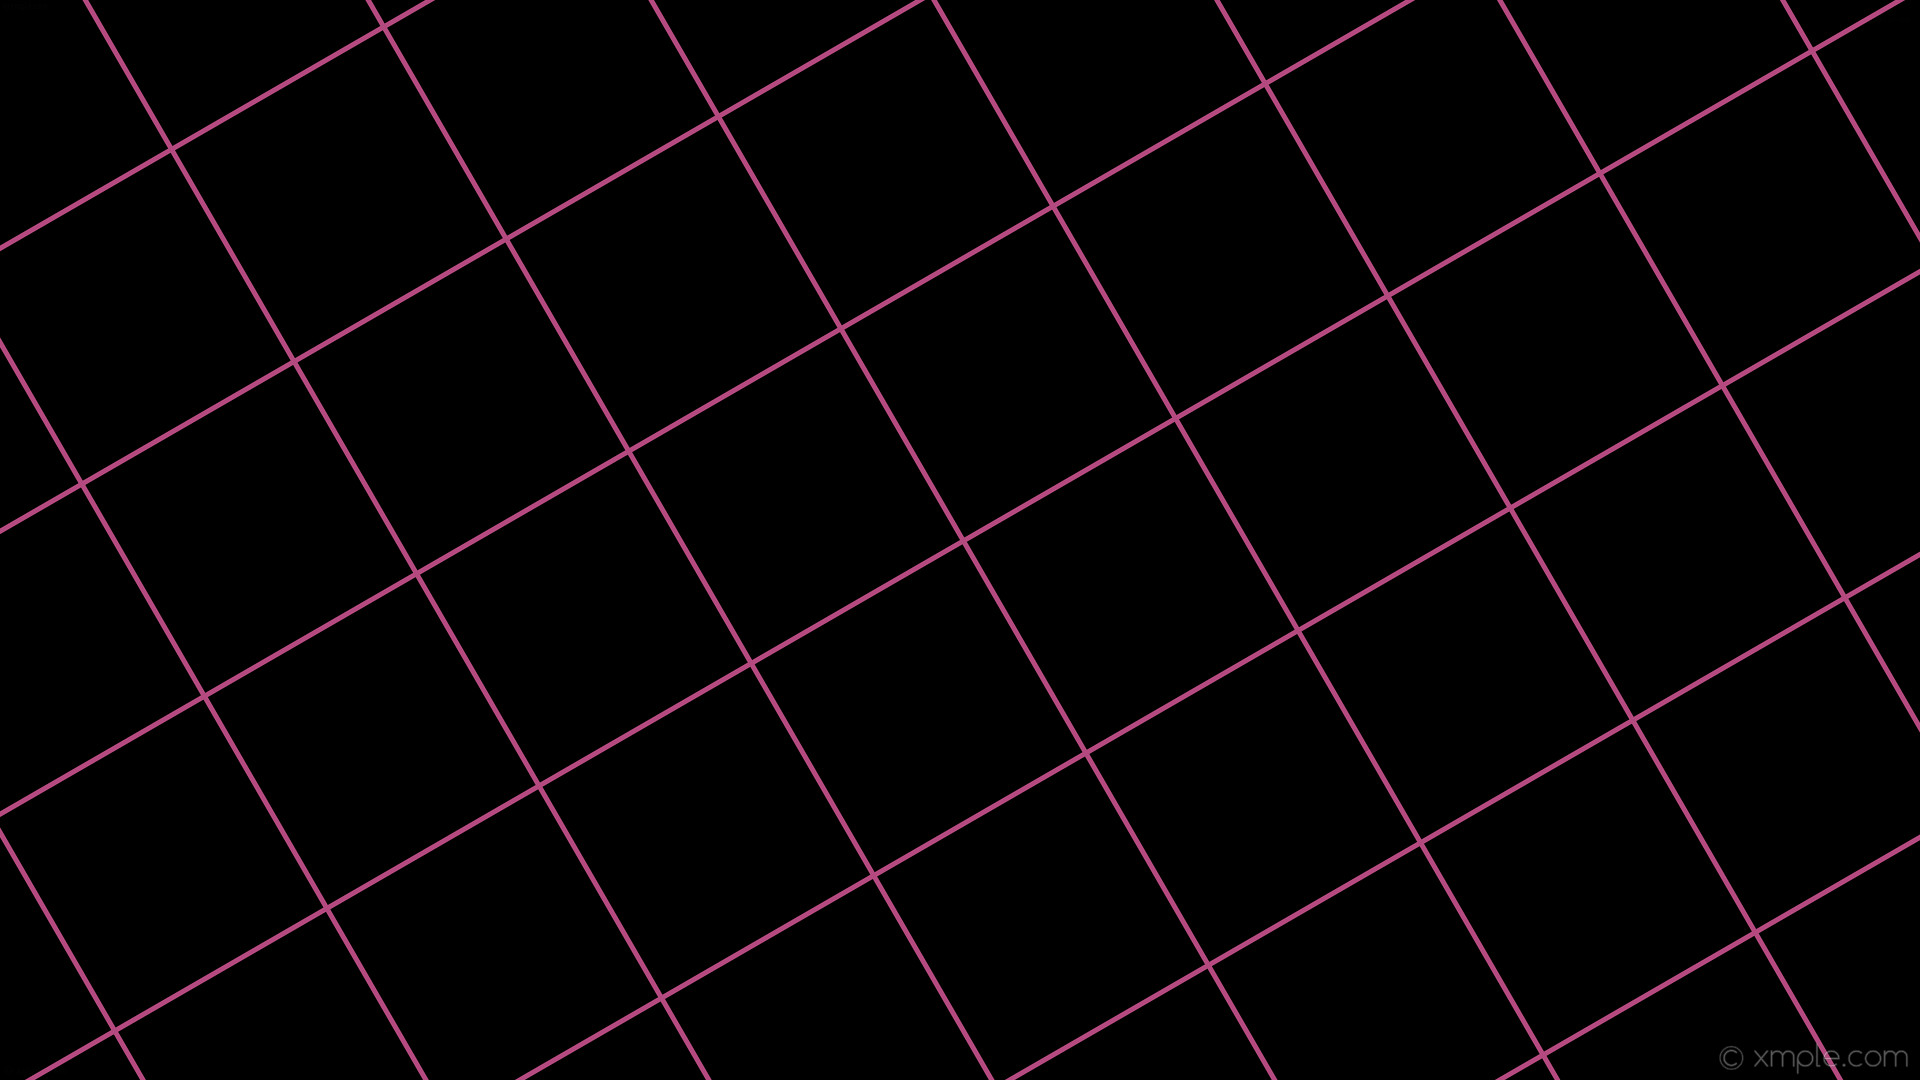 Black Grid Wallpaper 75 images